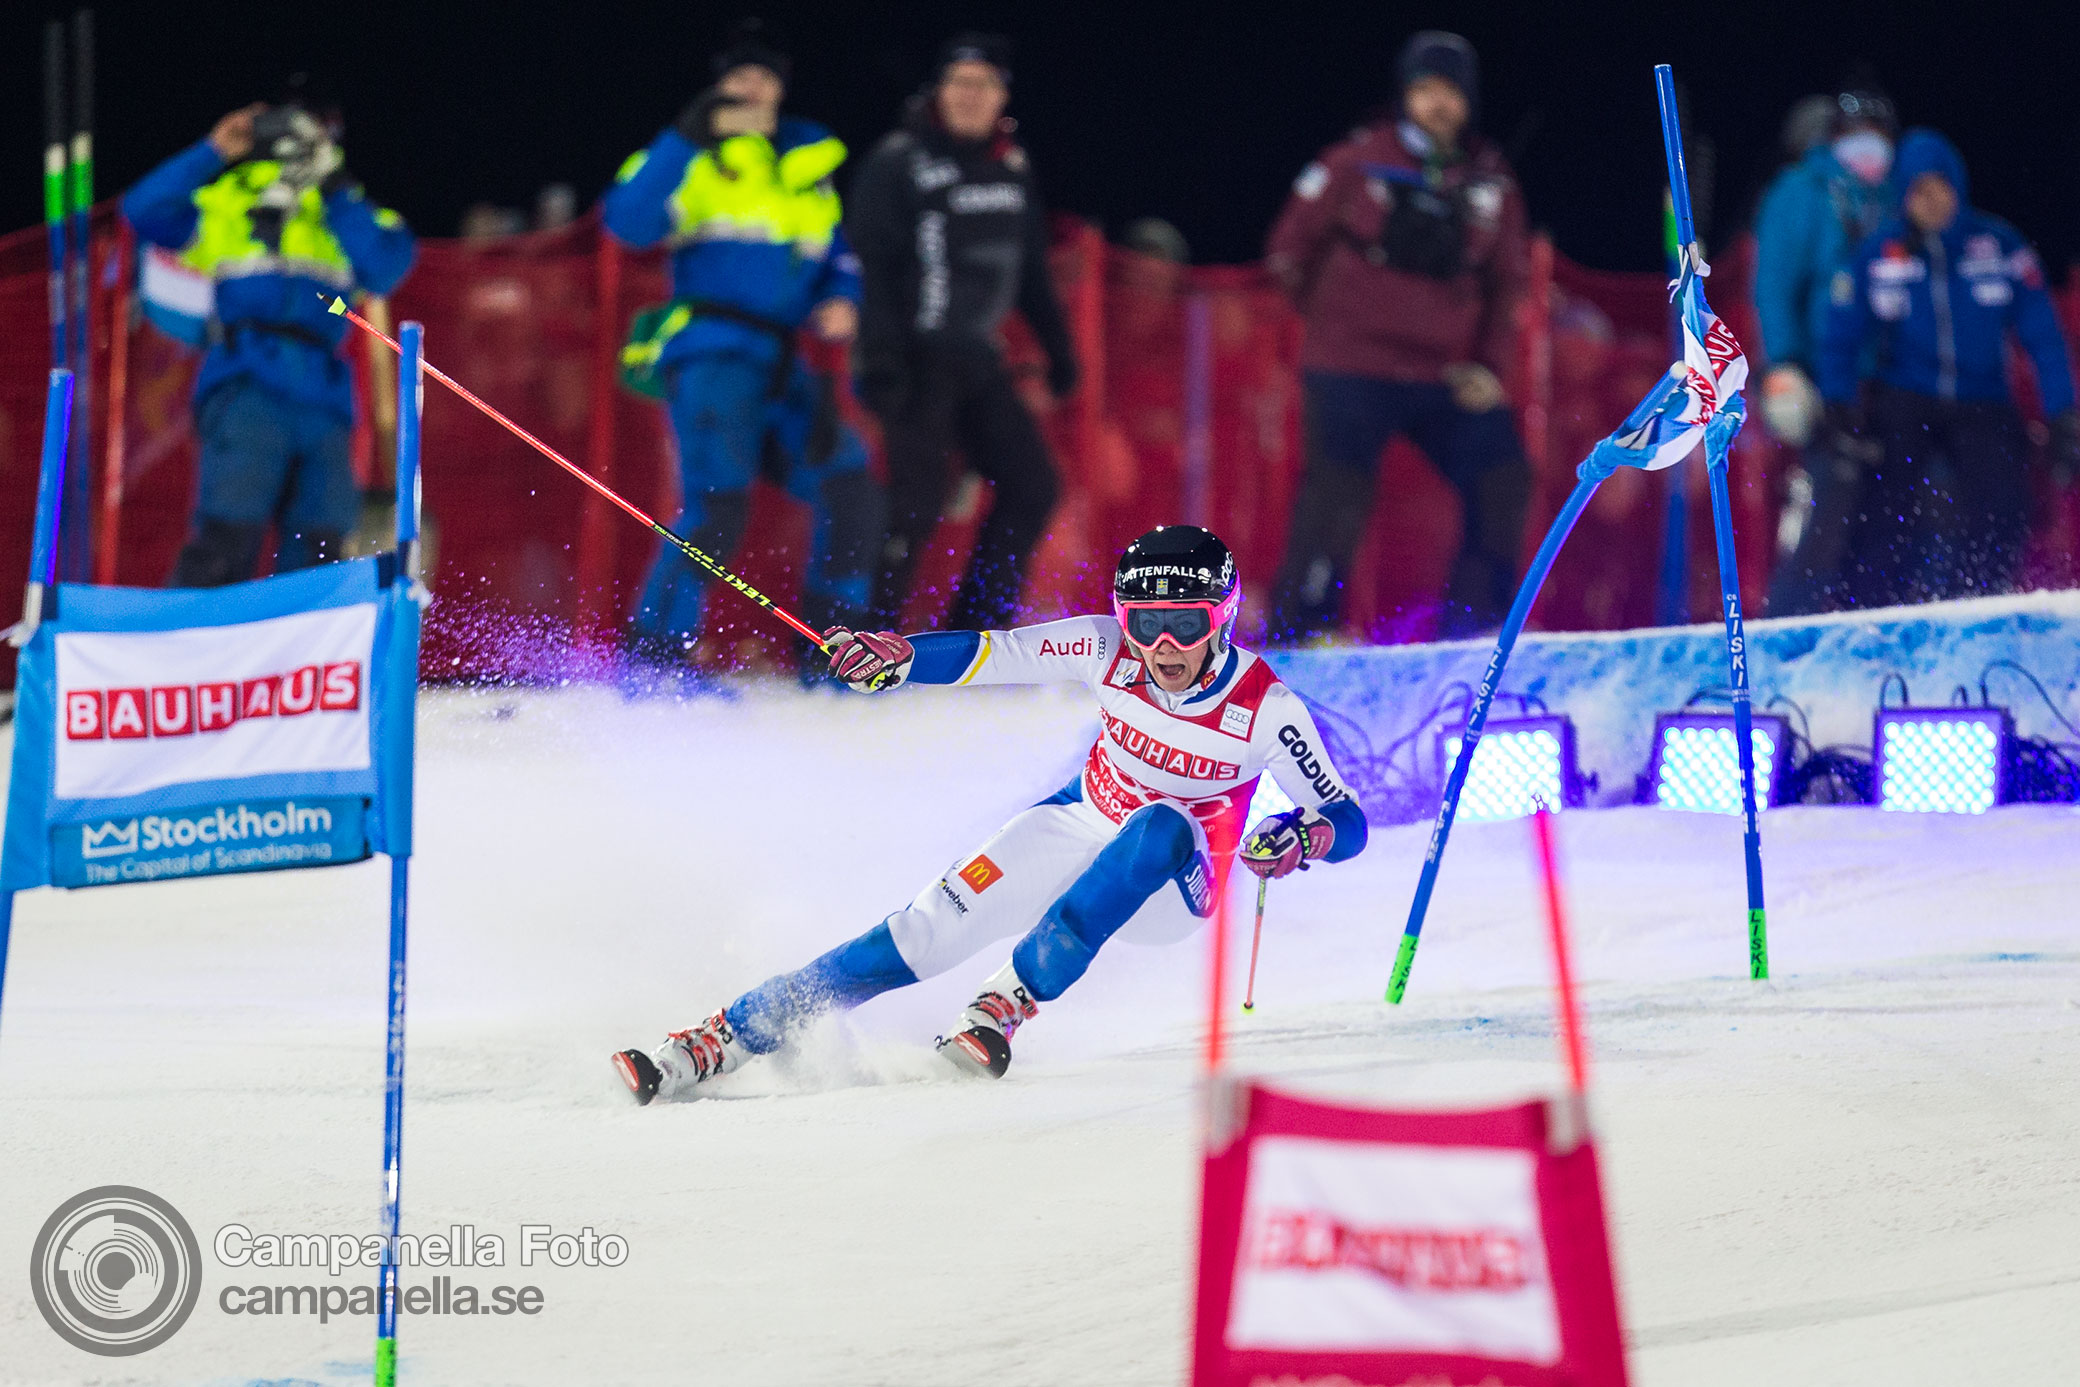 Ski World Cup comes to Stockholm - Michael Campanella Photography